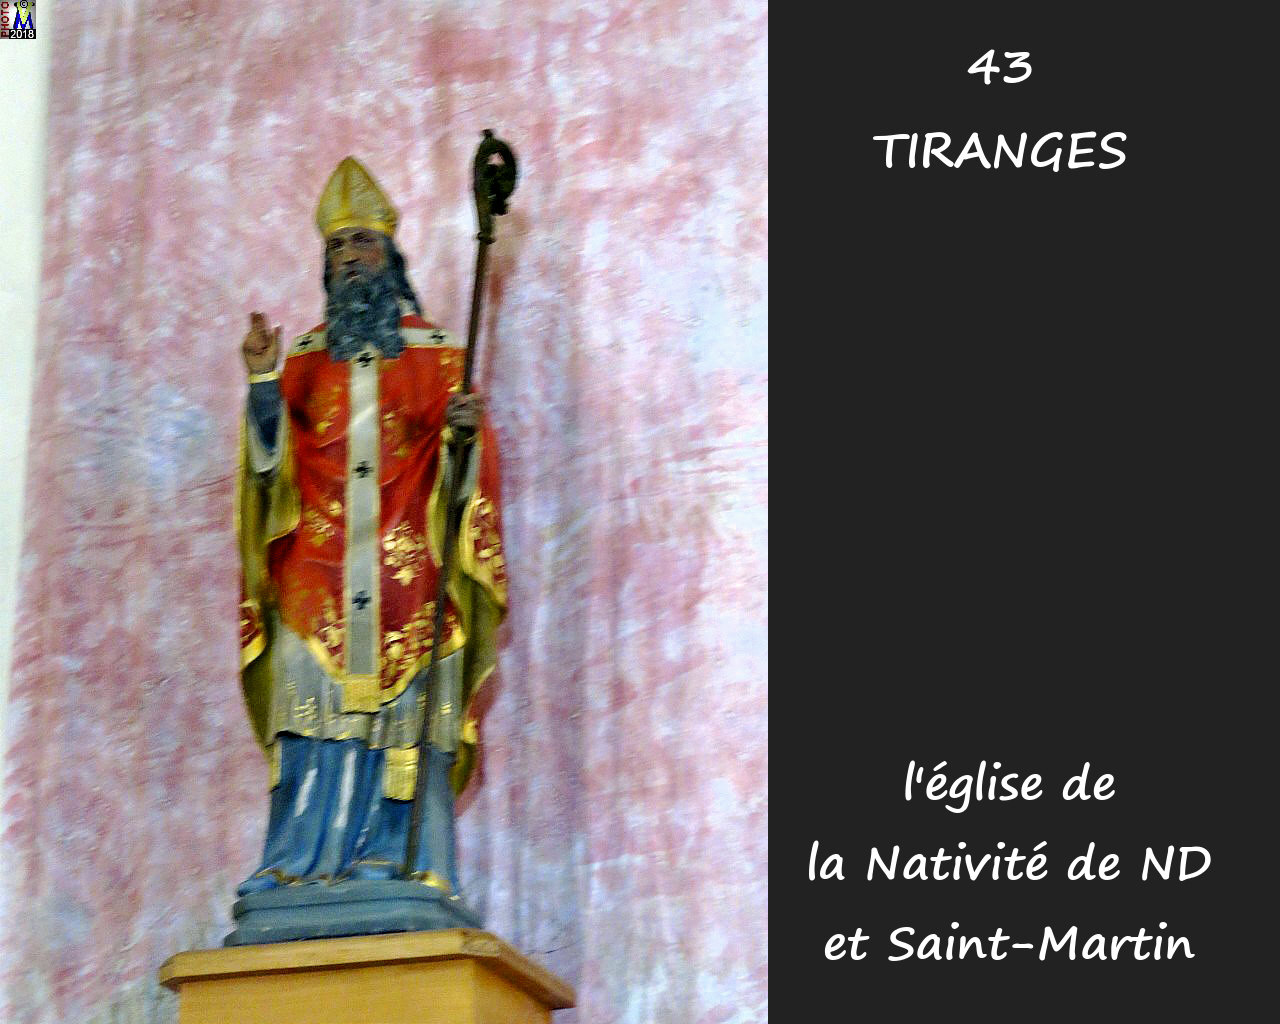 43TIRANGES_eglise_250.jpg